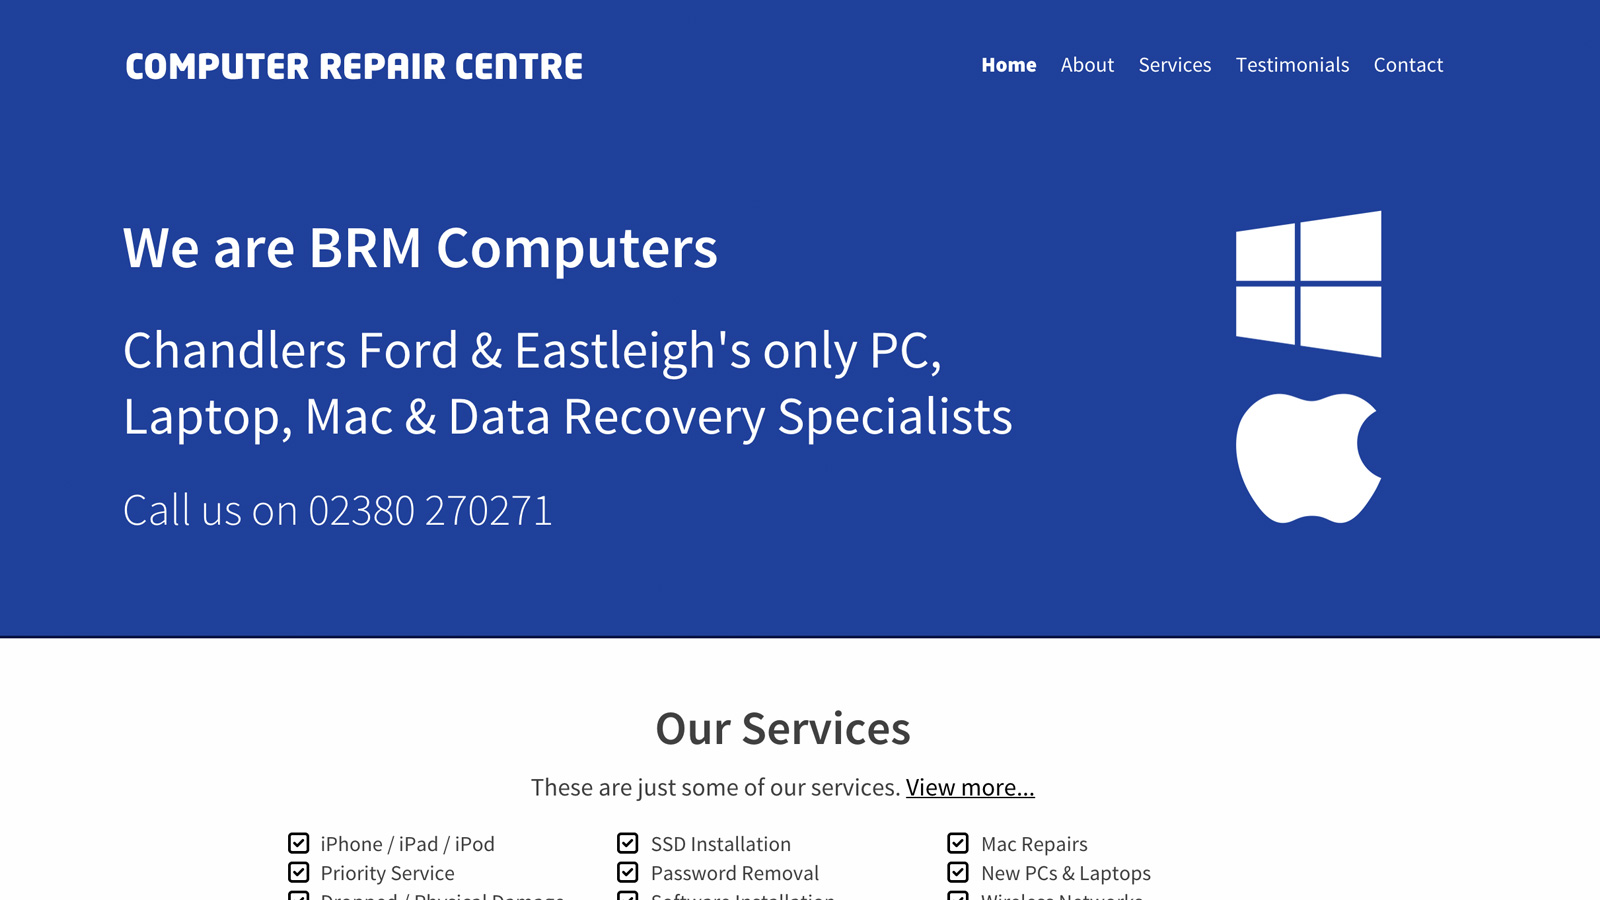 BRM Computers Site